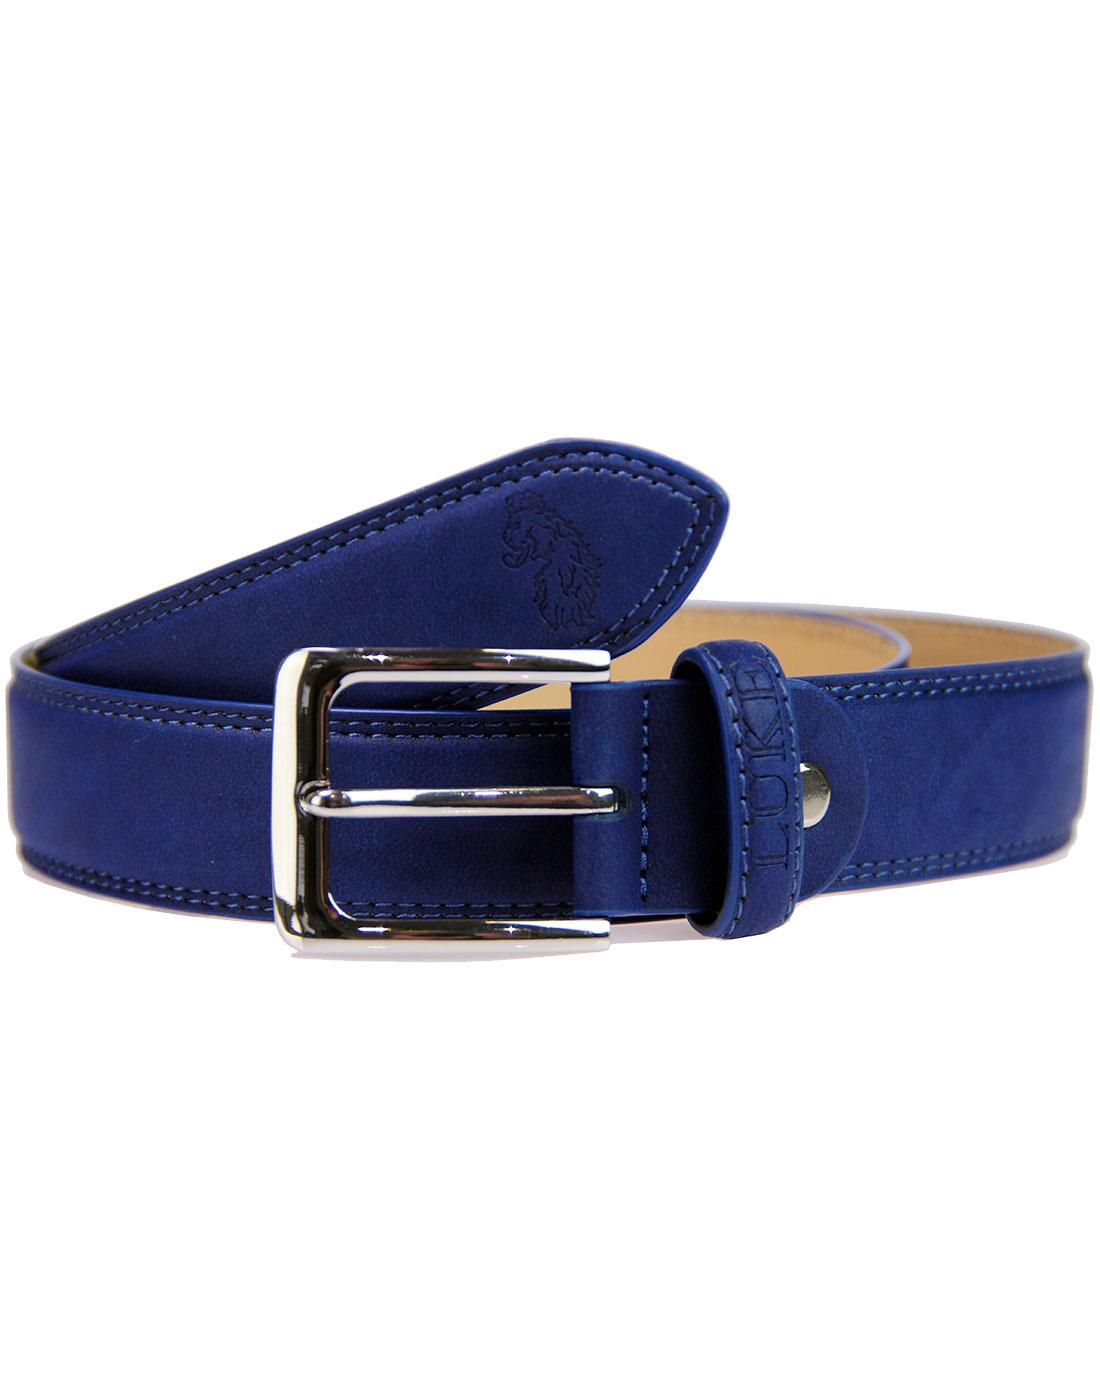 Bowden LUKE 1977 Leather Lion Embossed Belt NAVY